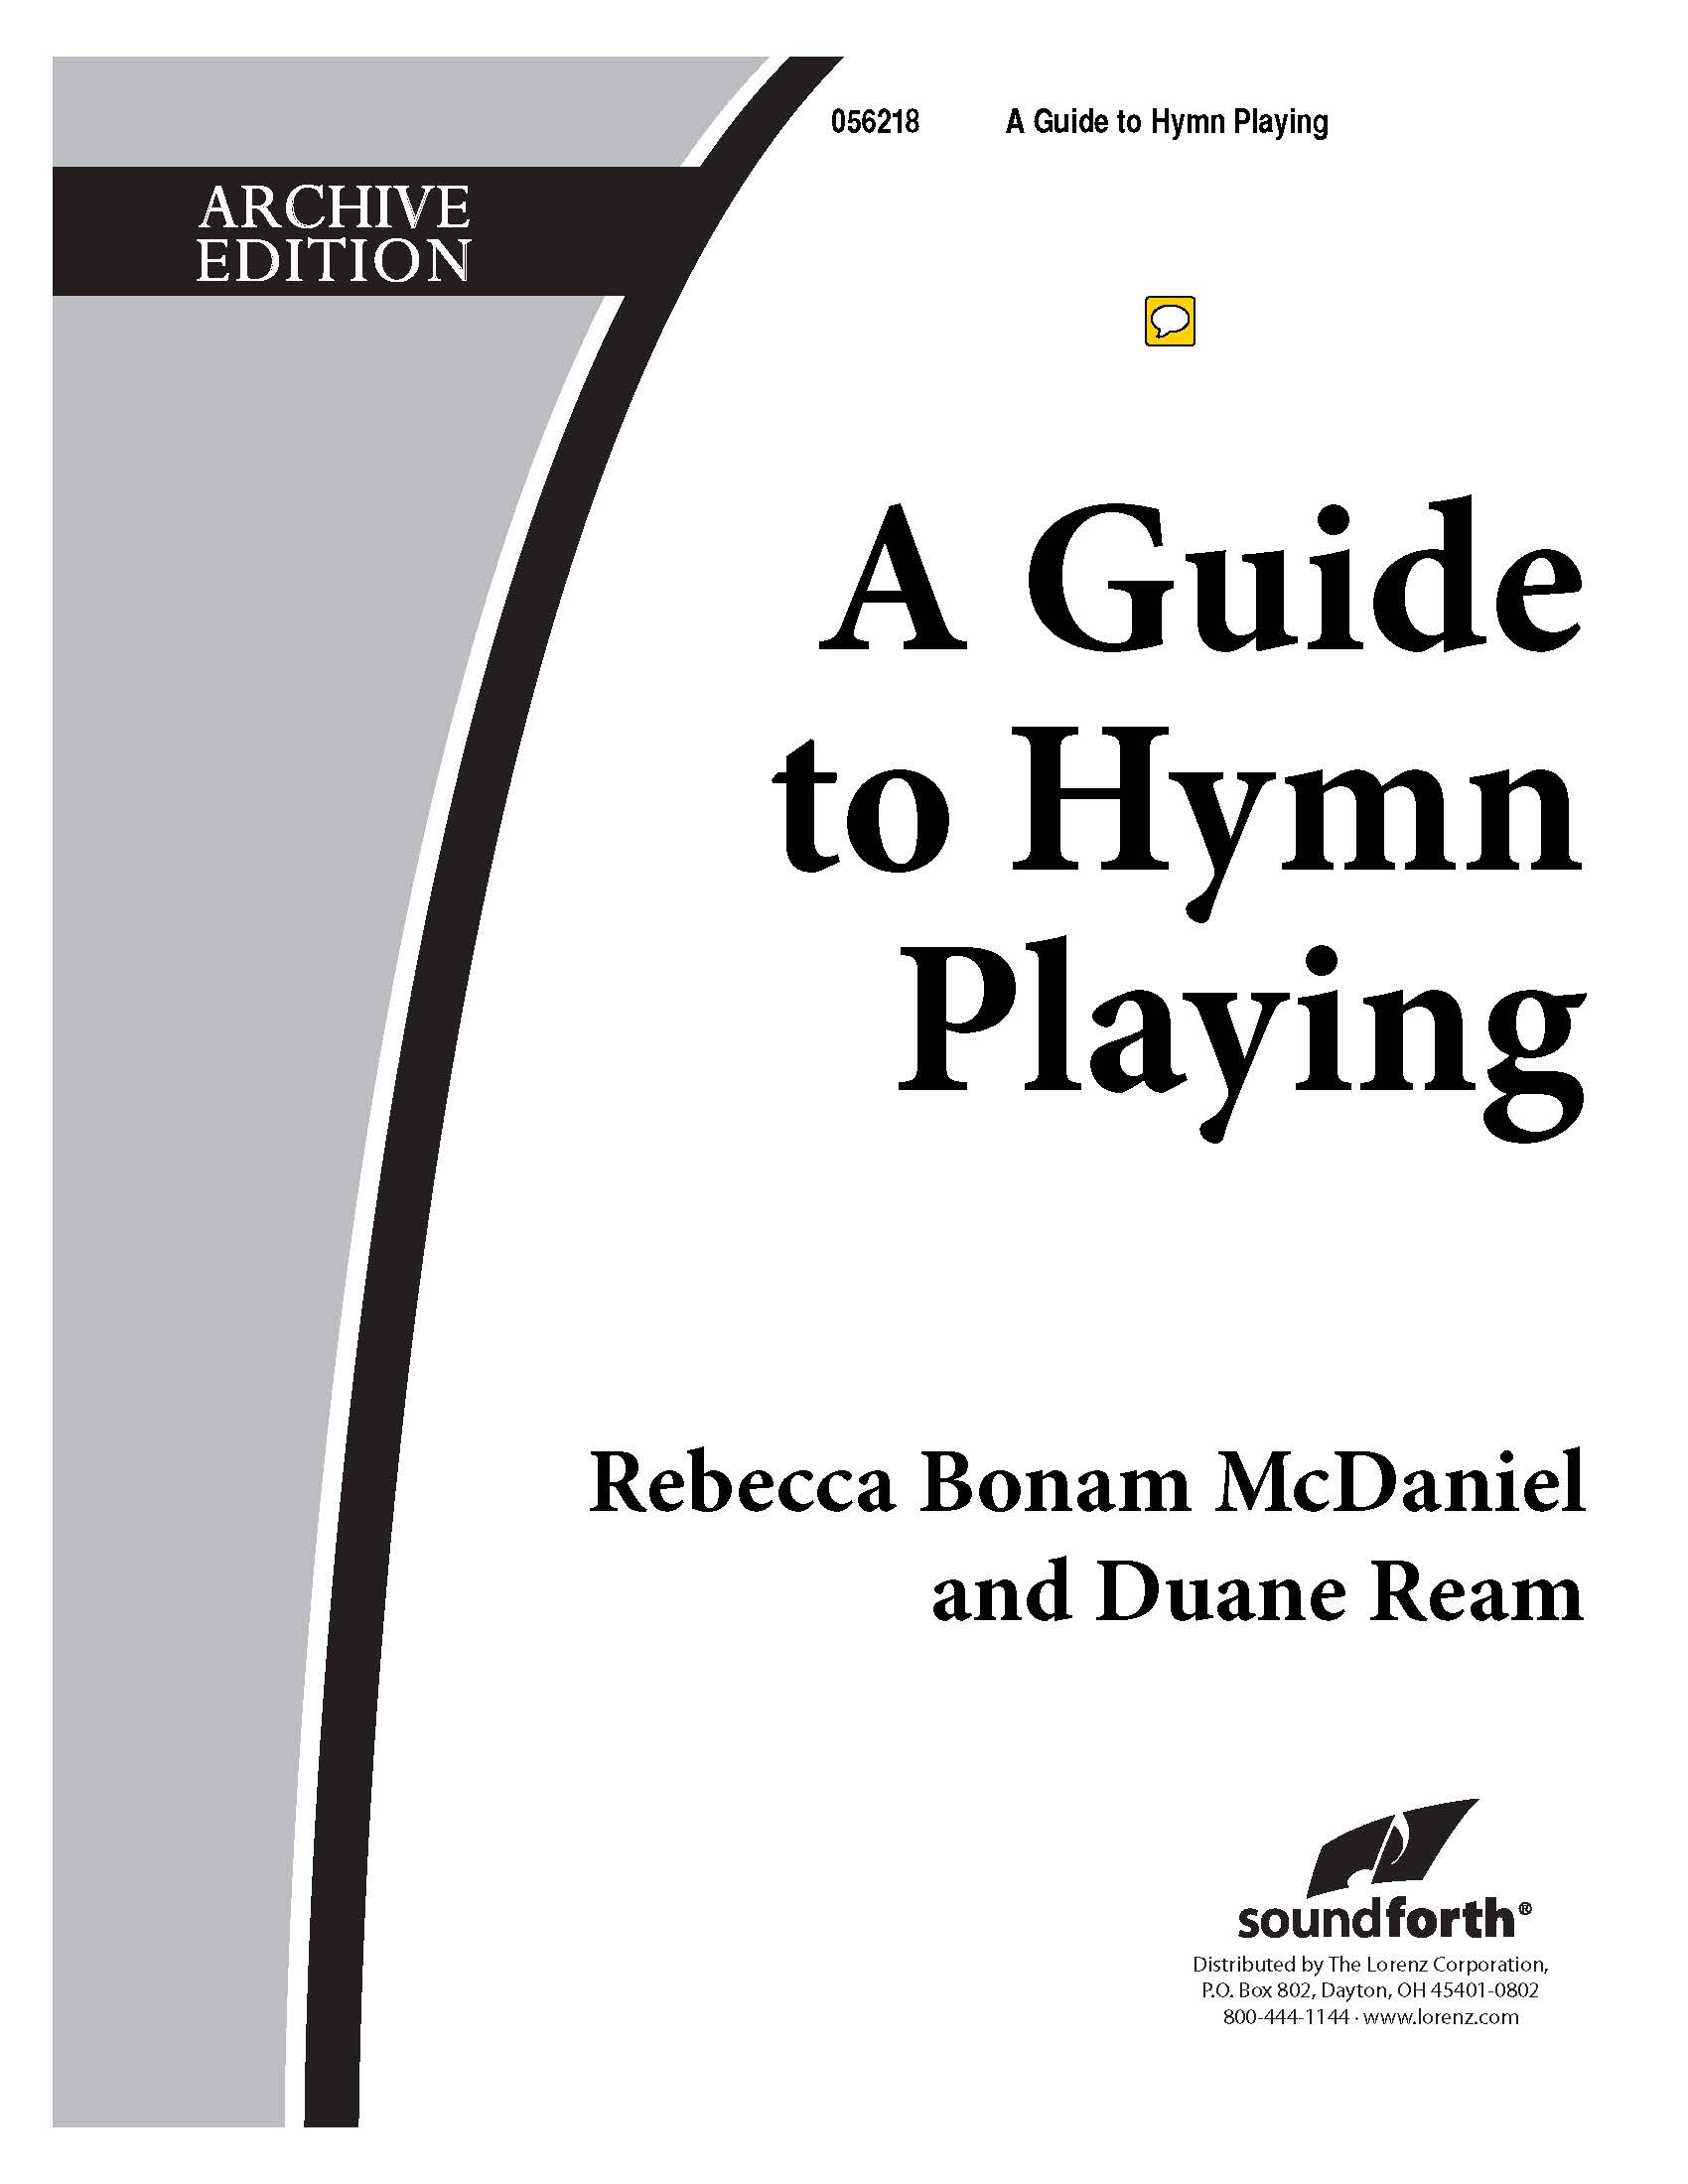 A Guide to Hymn Playing